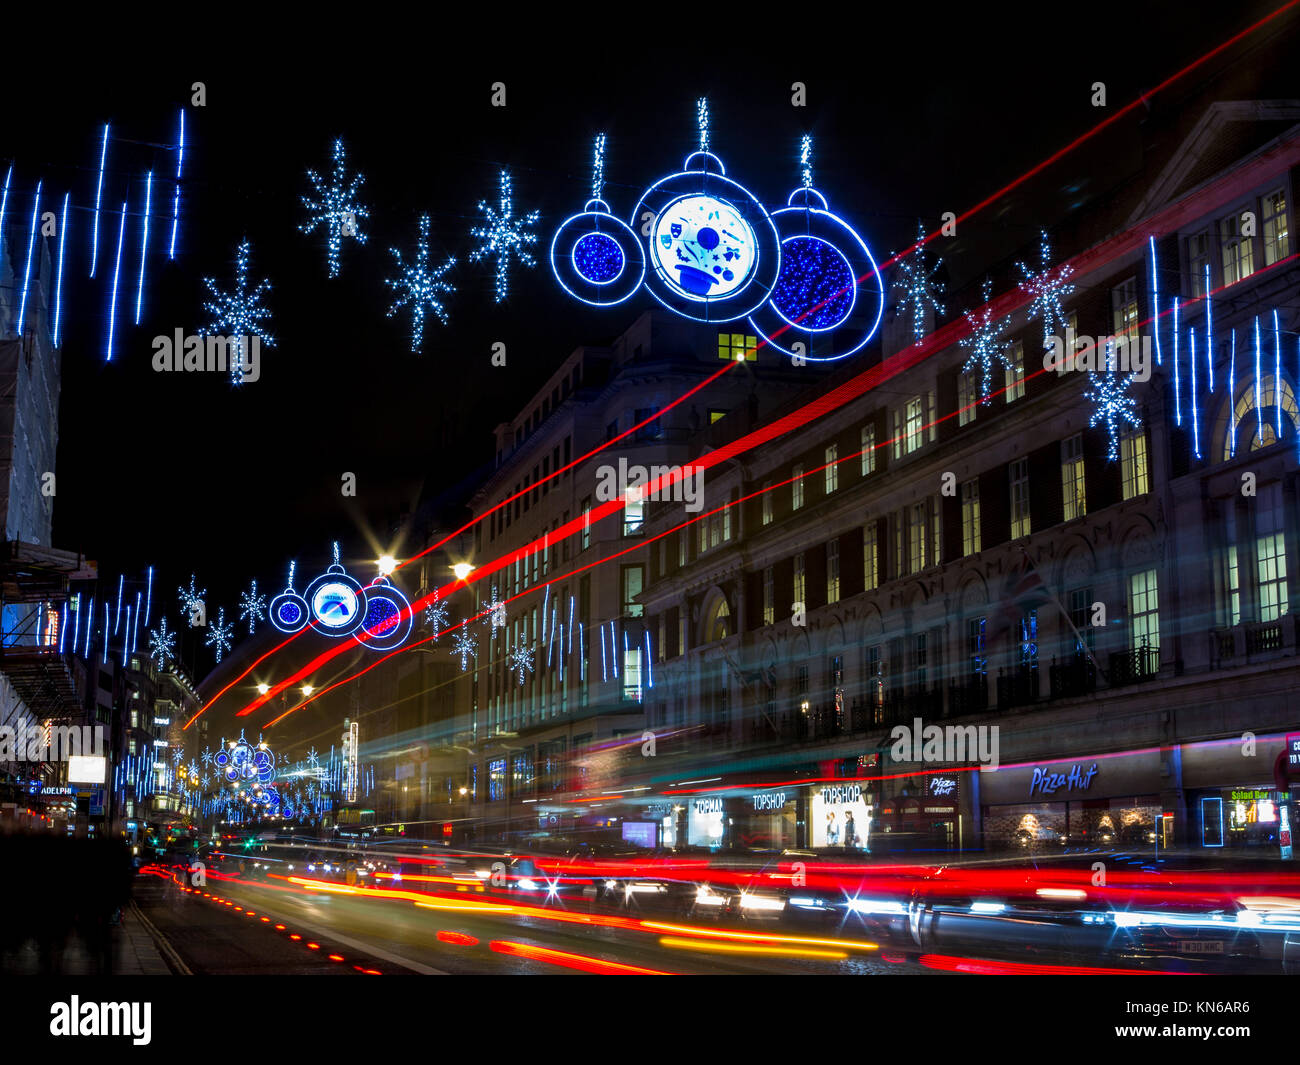 Light trails on The Strand in London at Christmas time - Stock Image